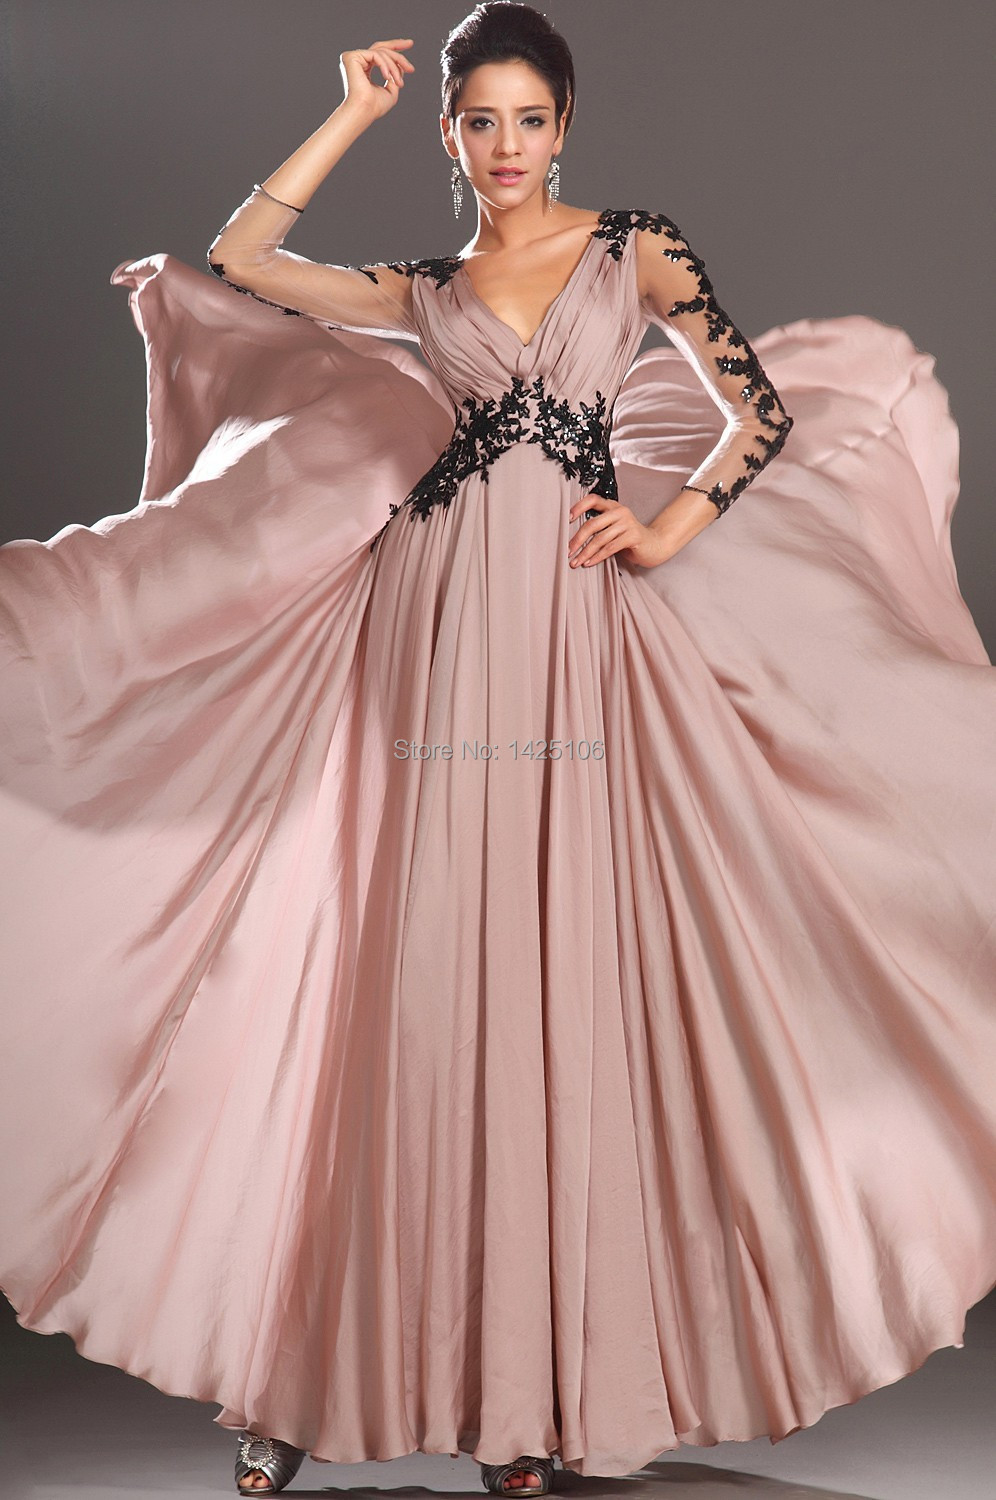 Formal New Year\'s Eve Dress | Dress images